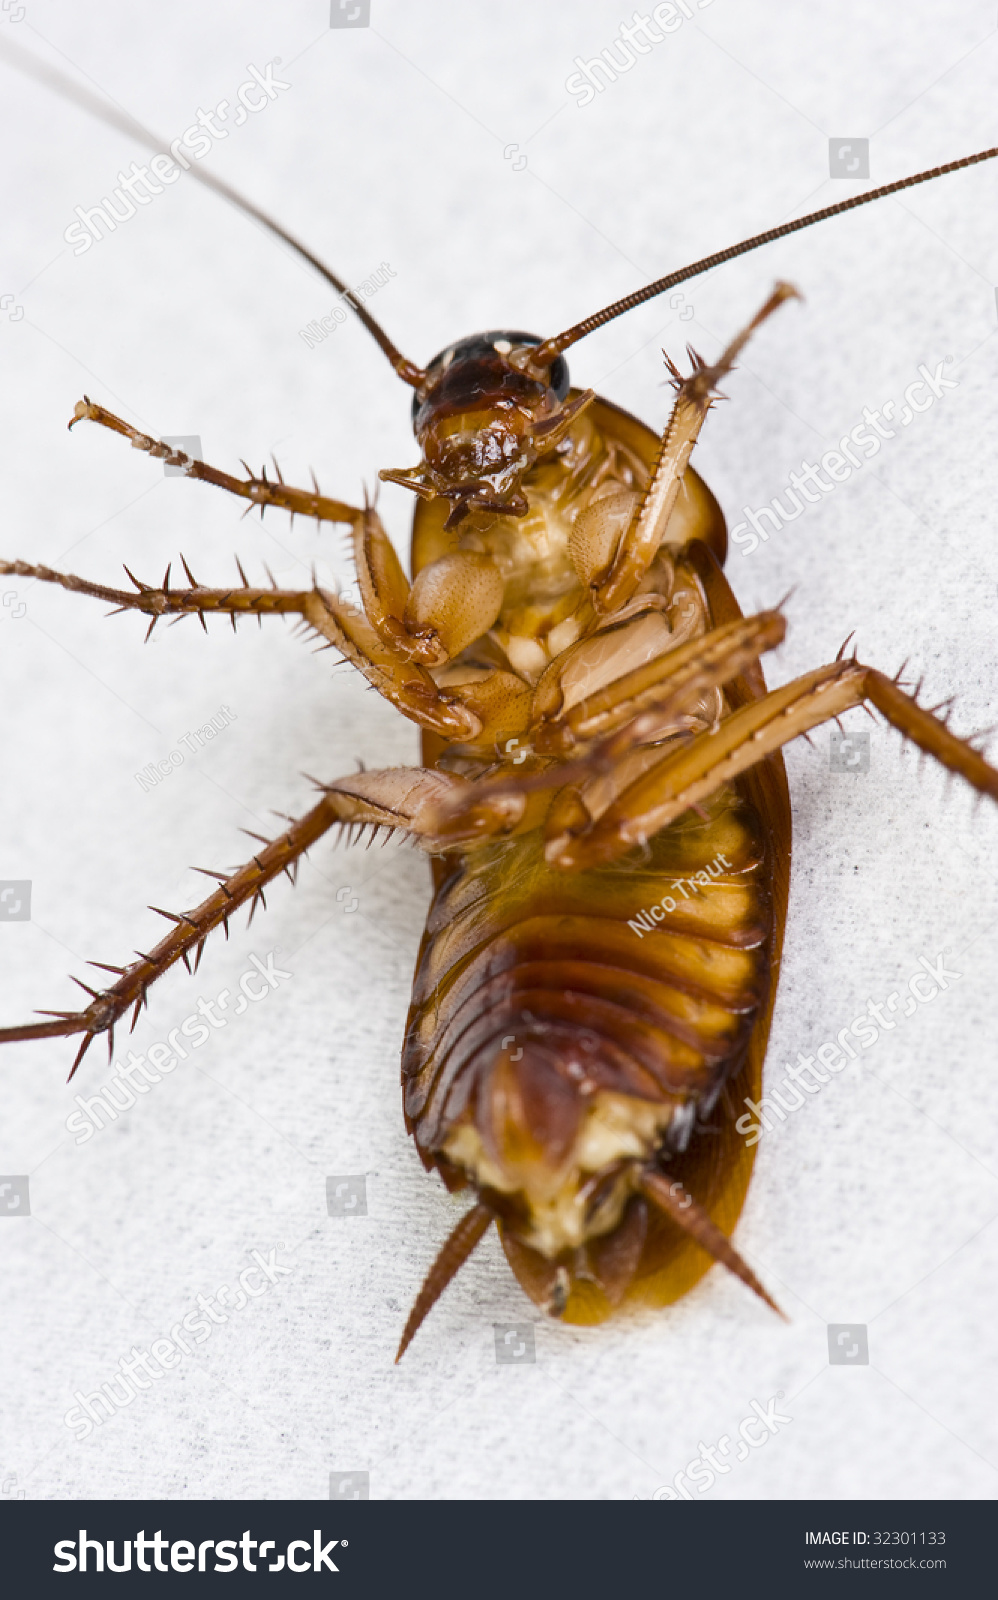 cockroach cockroach on its back